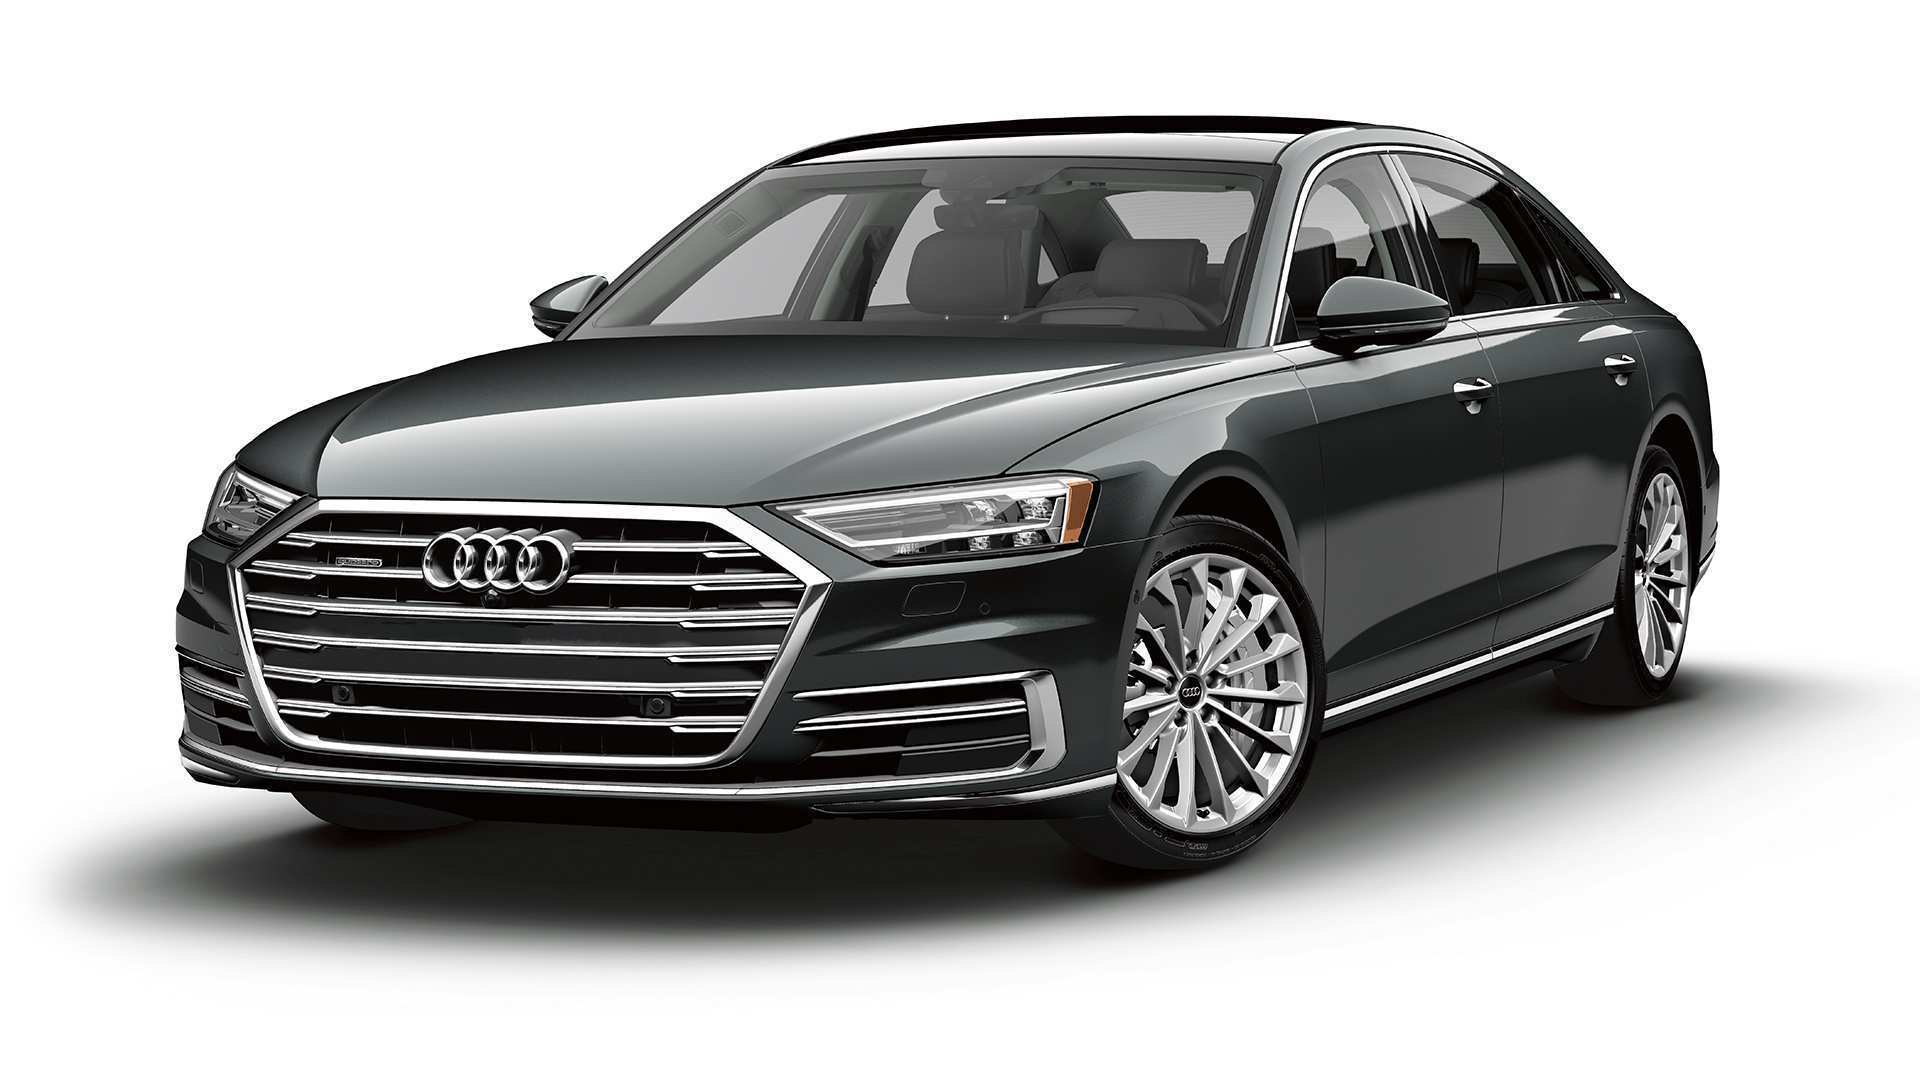 51 All New Audi A8 2019 Ratings with Audi A8 2019